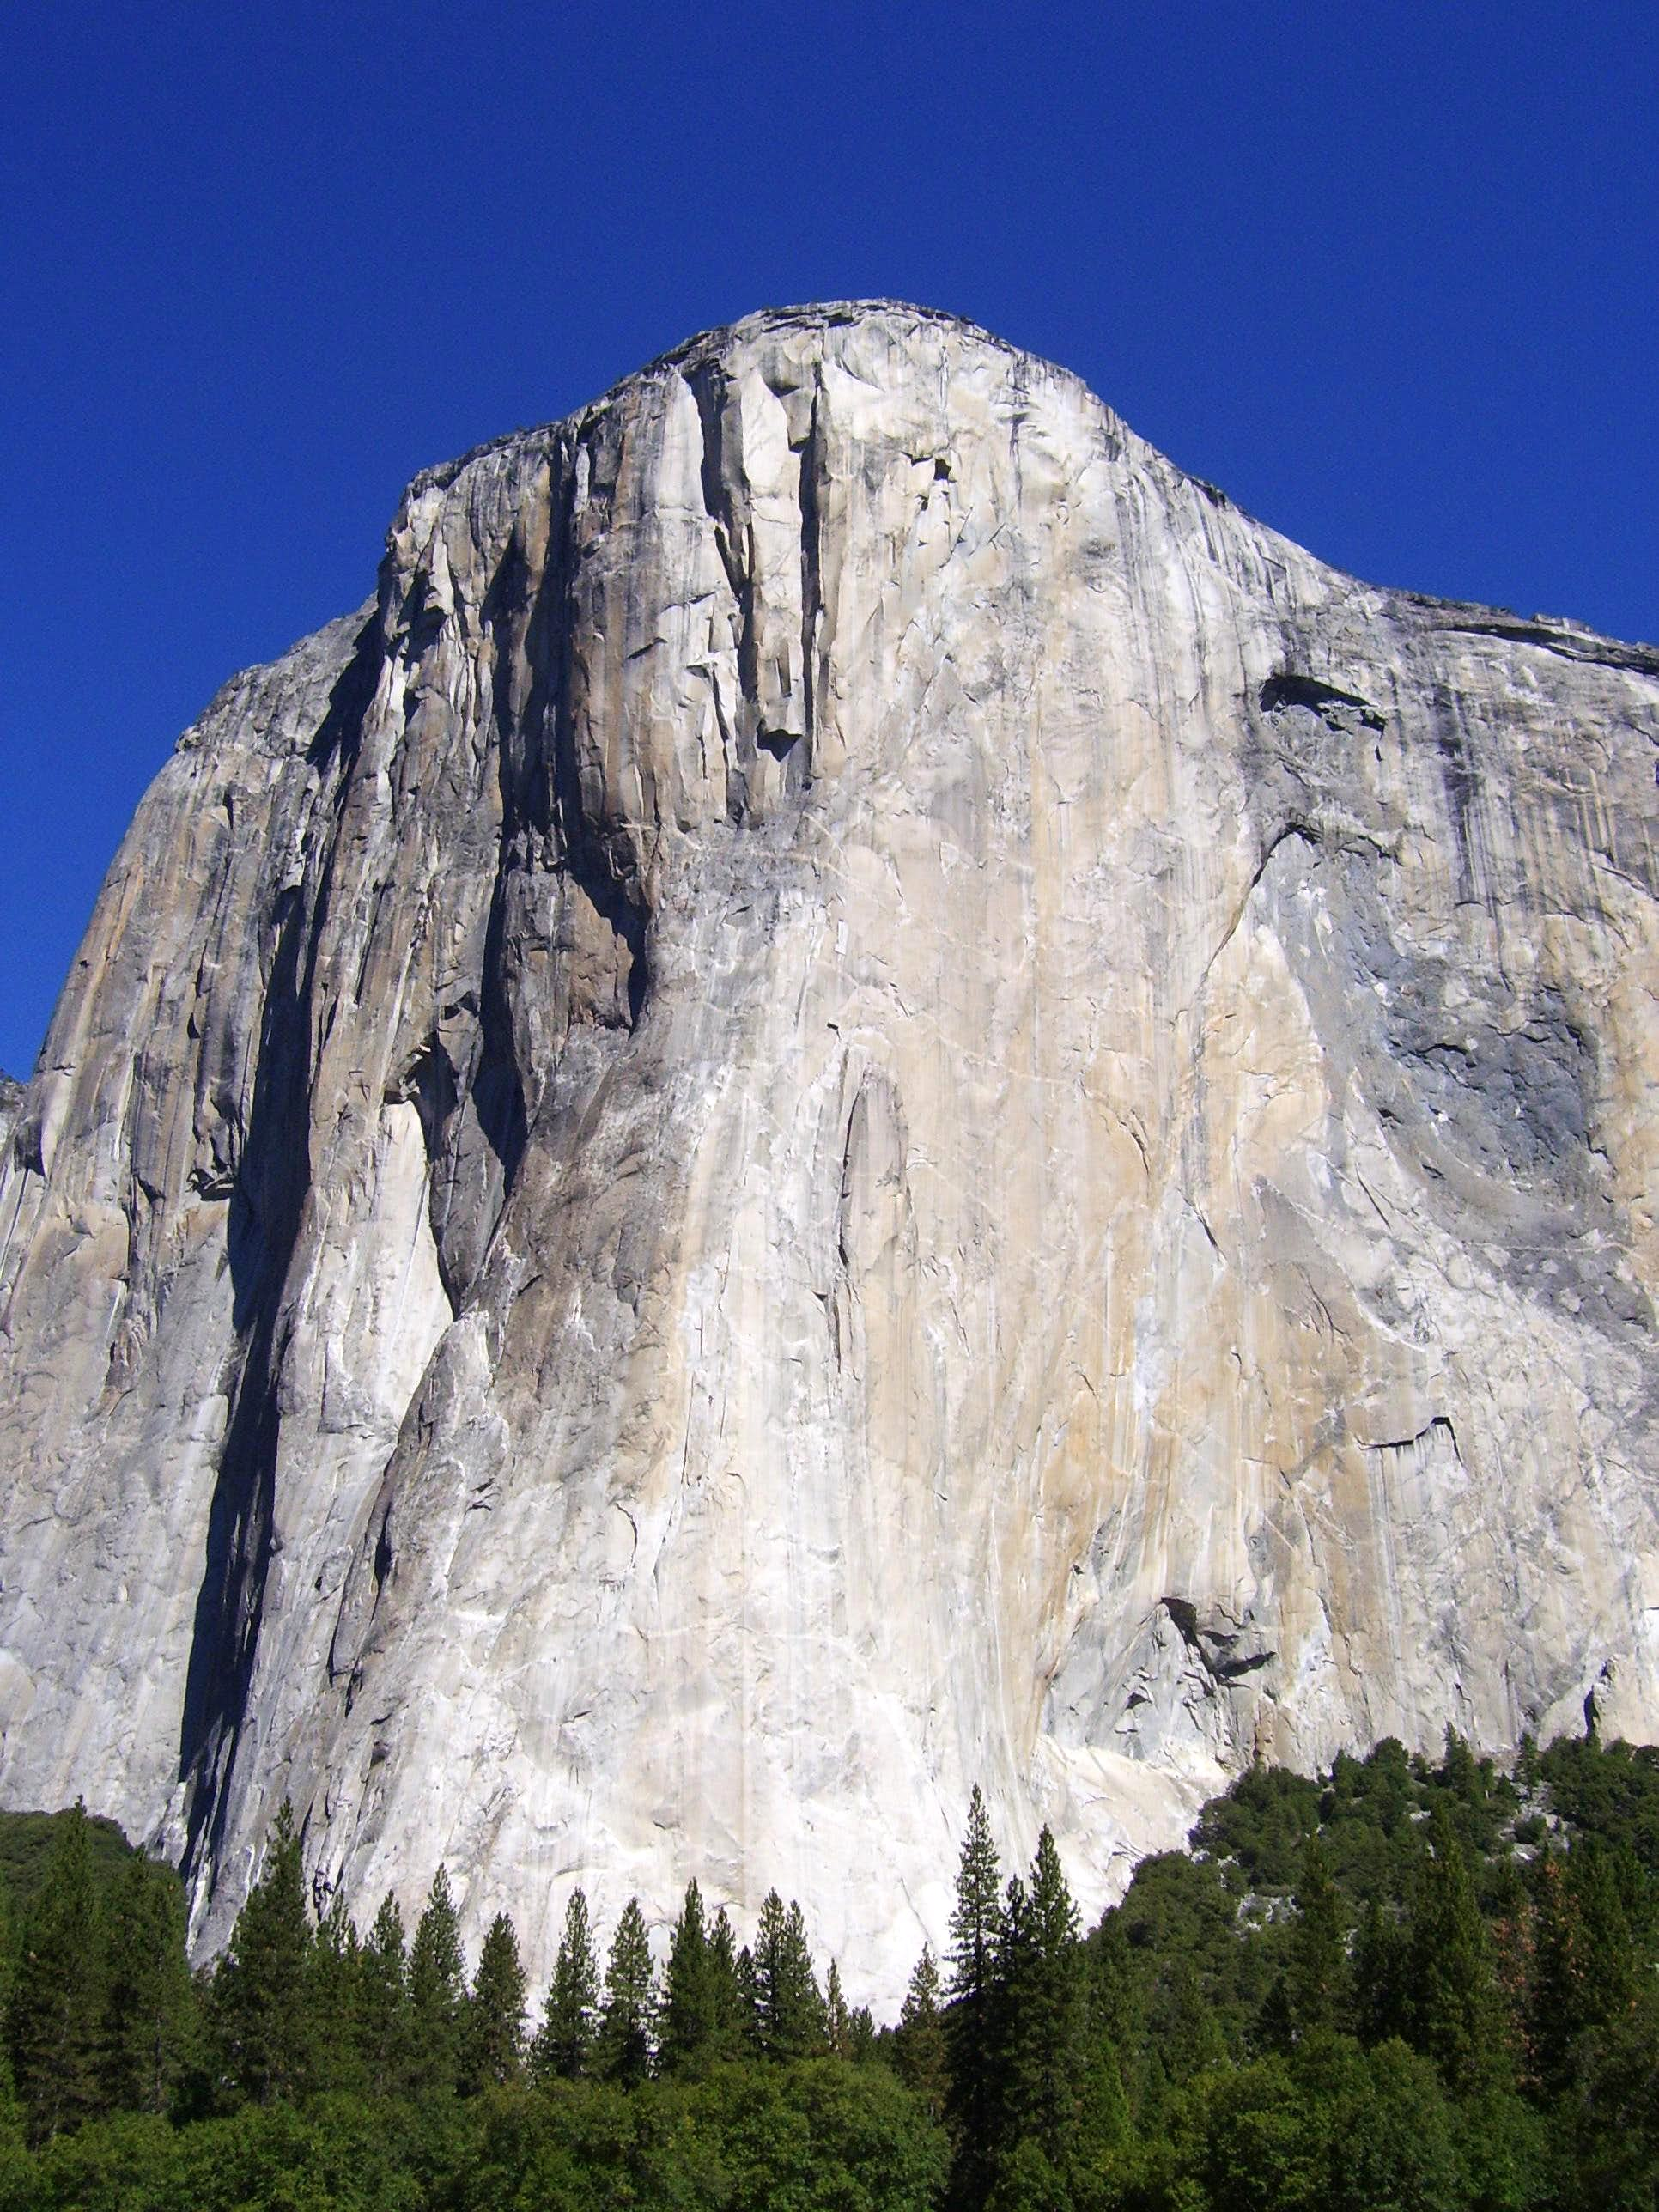 Walls of Yosemite